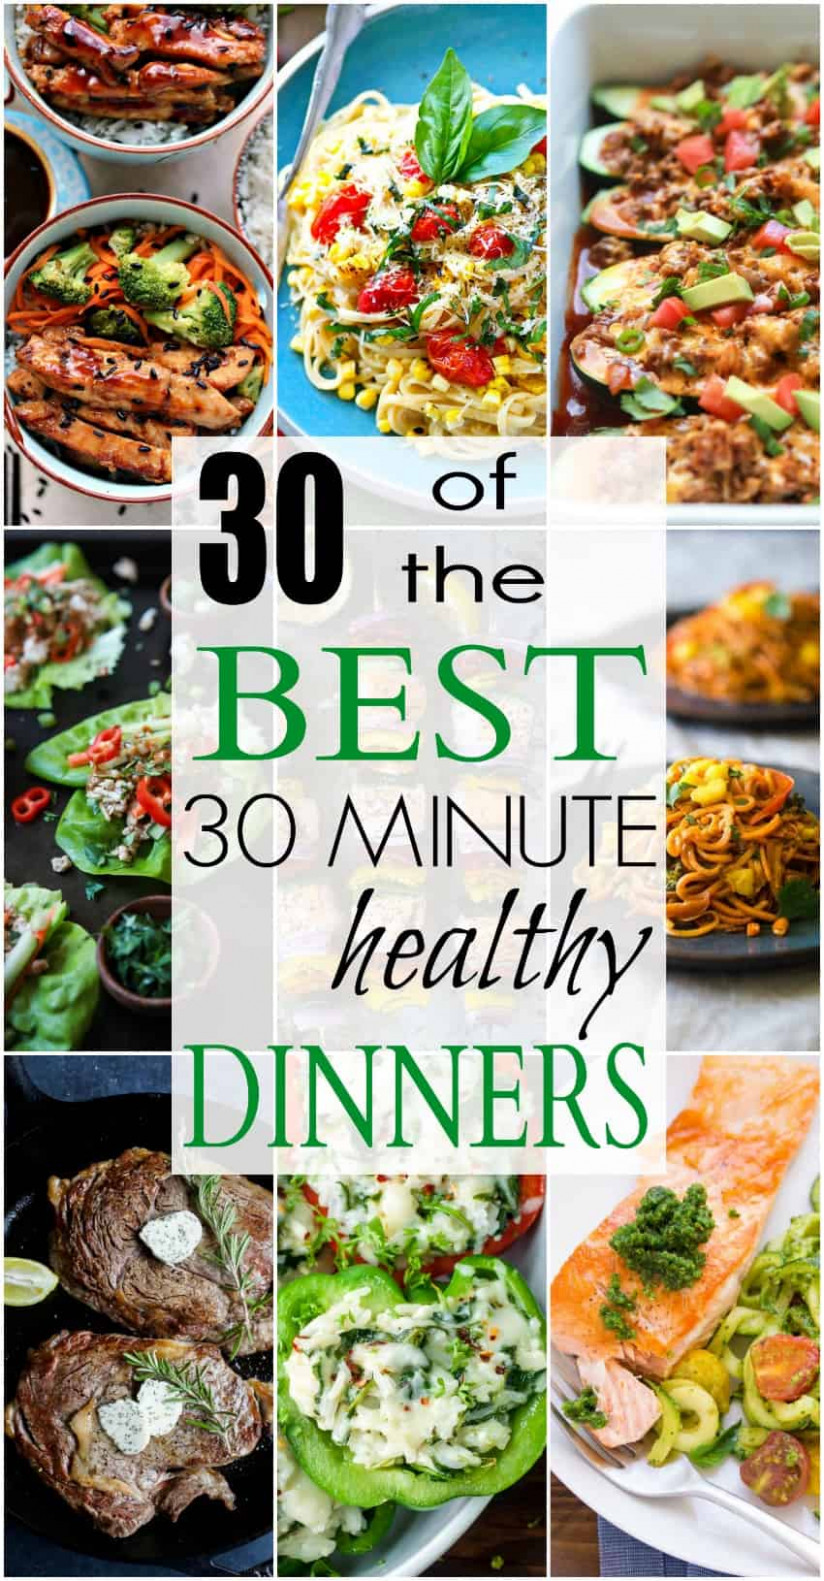 The BEST & Most Popular Recipes Of 15 | Easy Healthy Recipes - Recipes Dinner Date